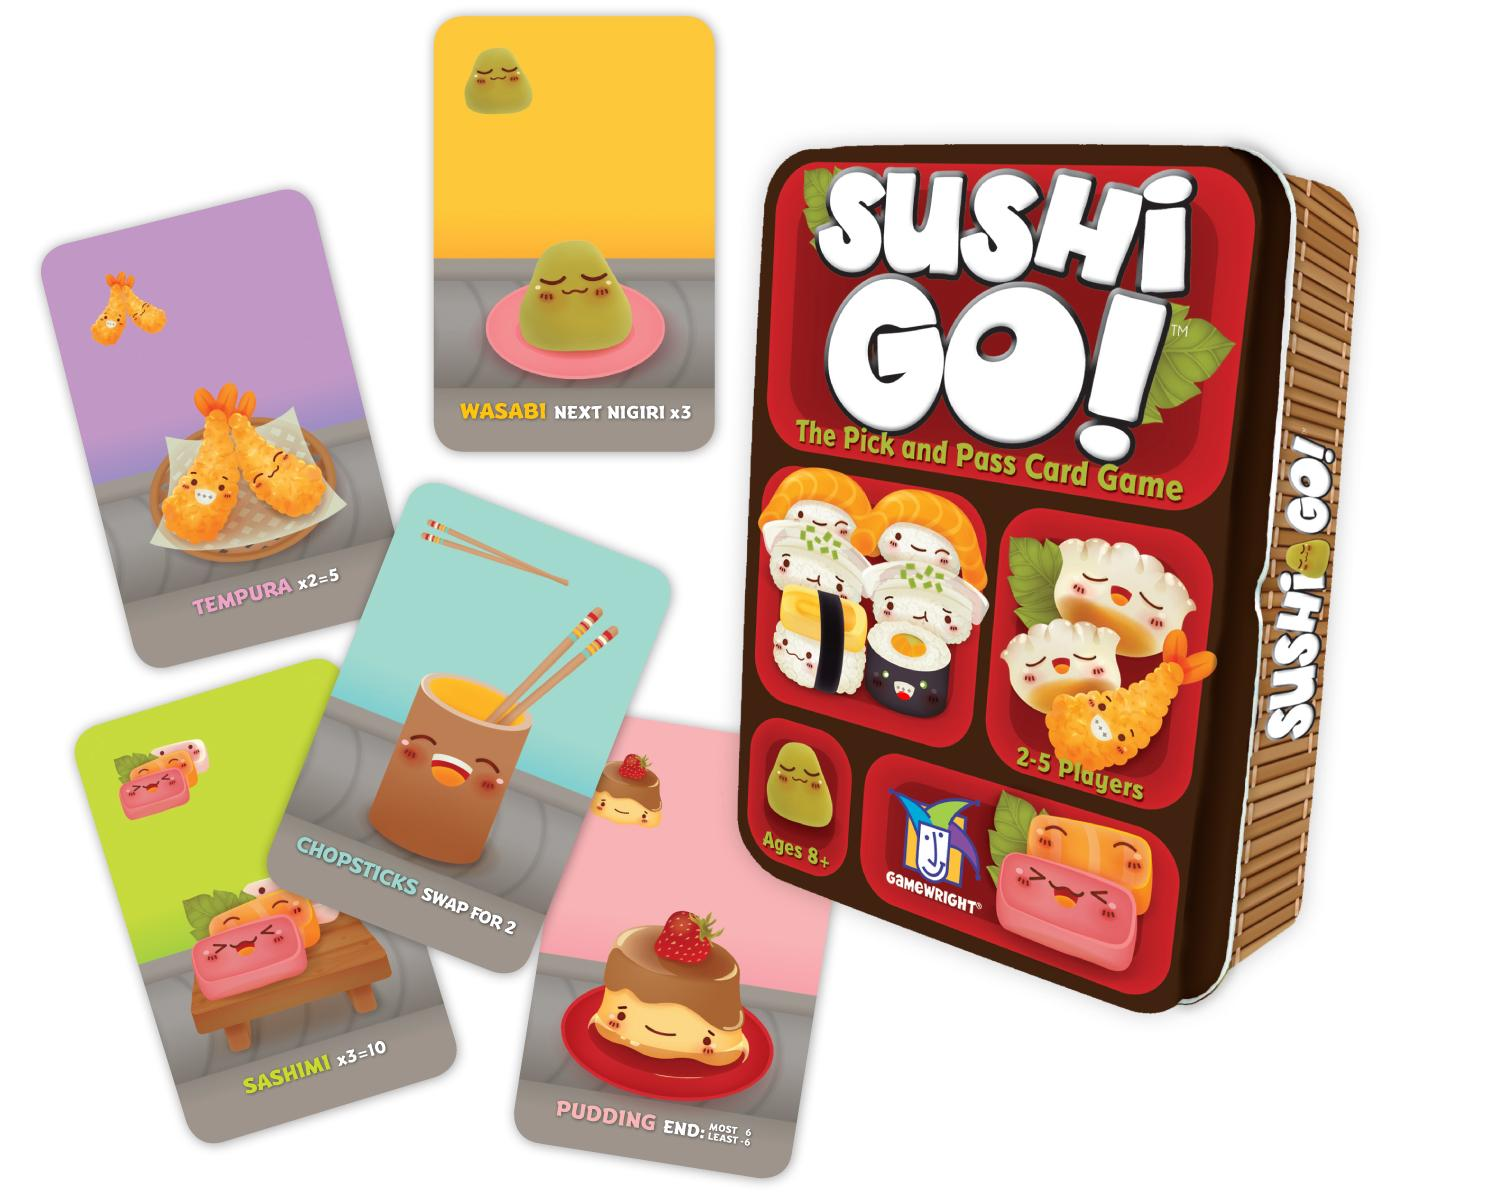 Sushi Go! The Pick and Pass Card Game by Gamewright